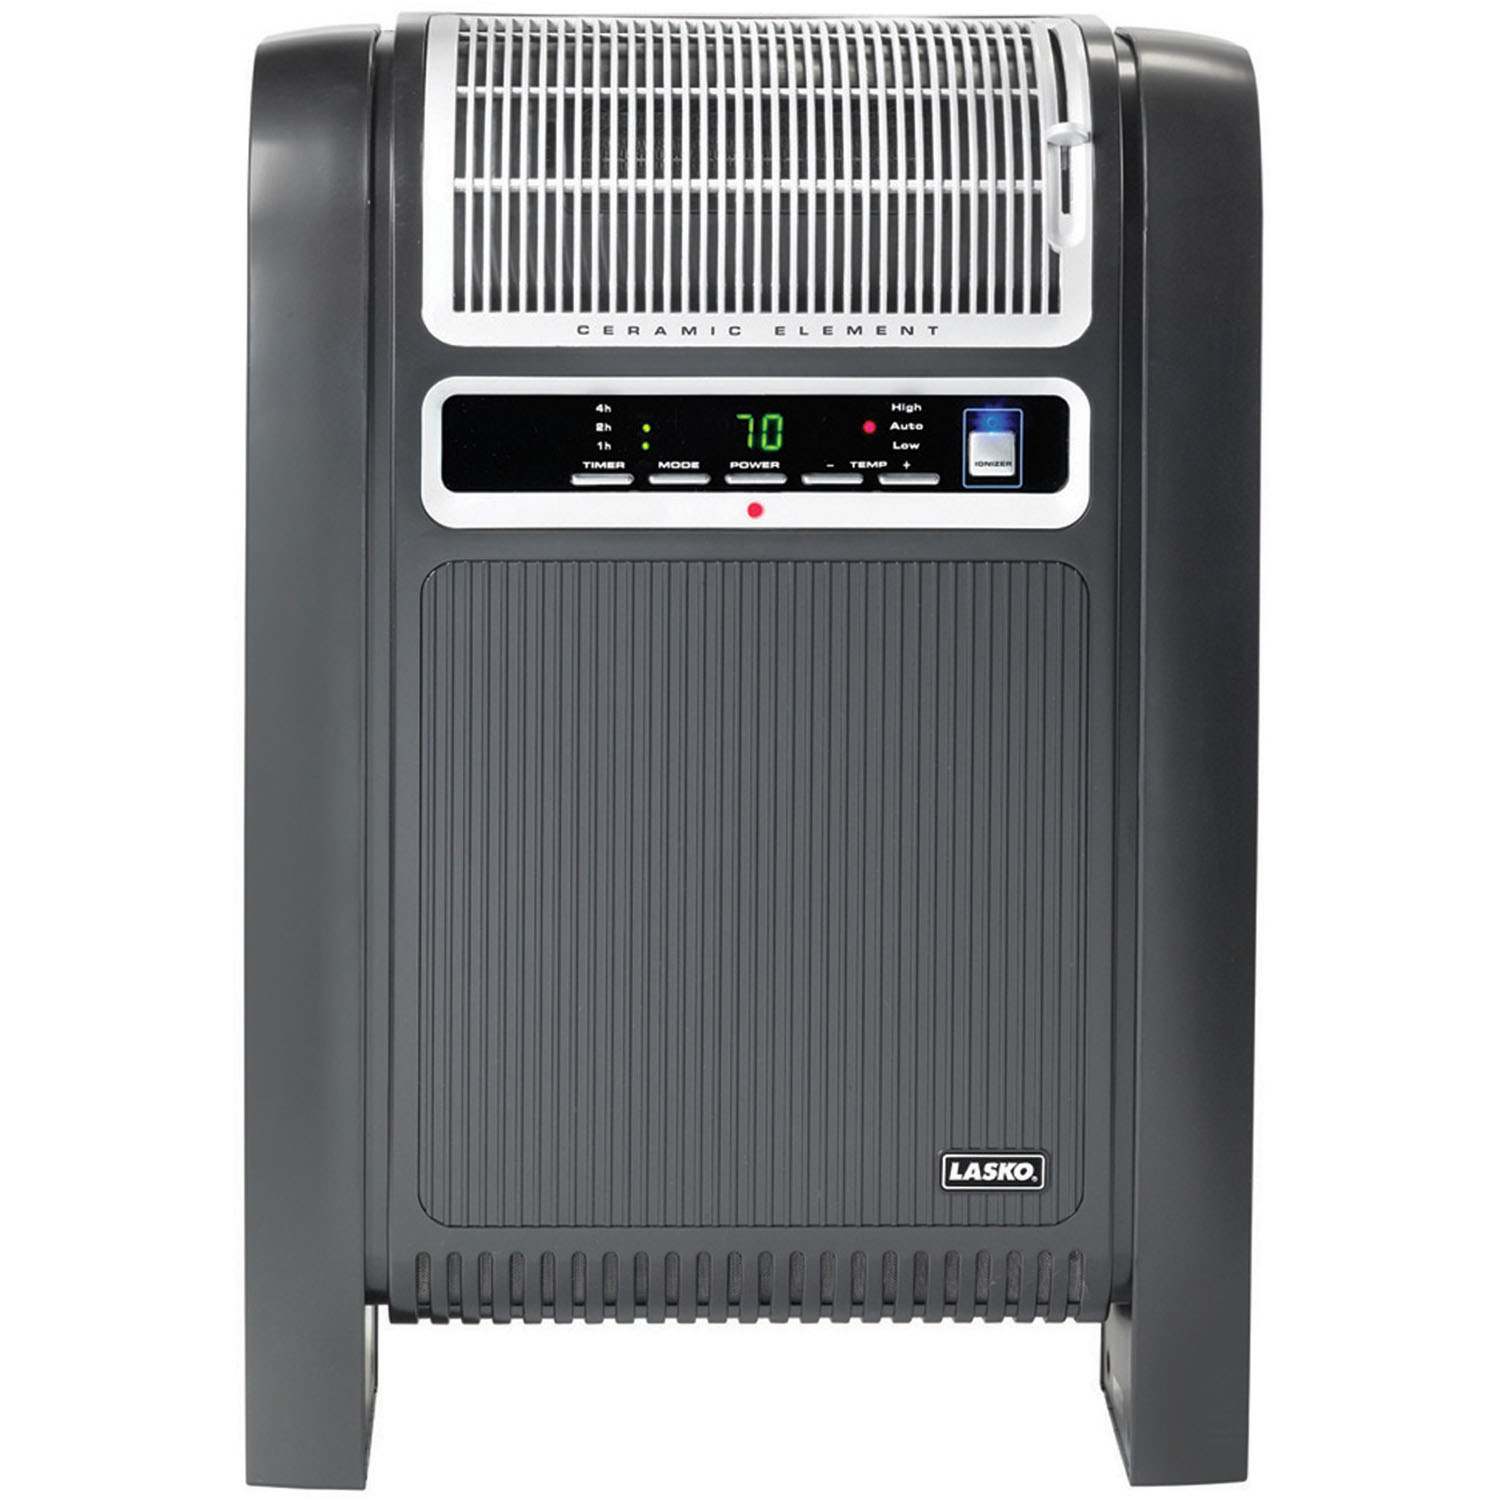 Lasko Cyclonic Ceramic Heater with Fresh Air Ionizer and Remote Control